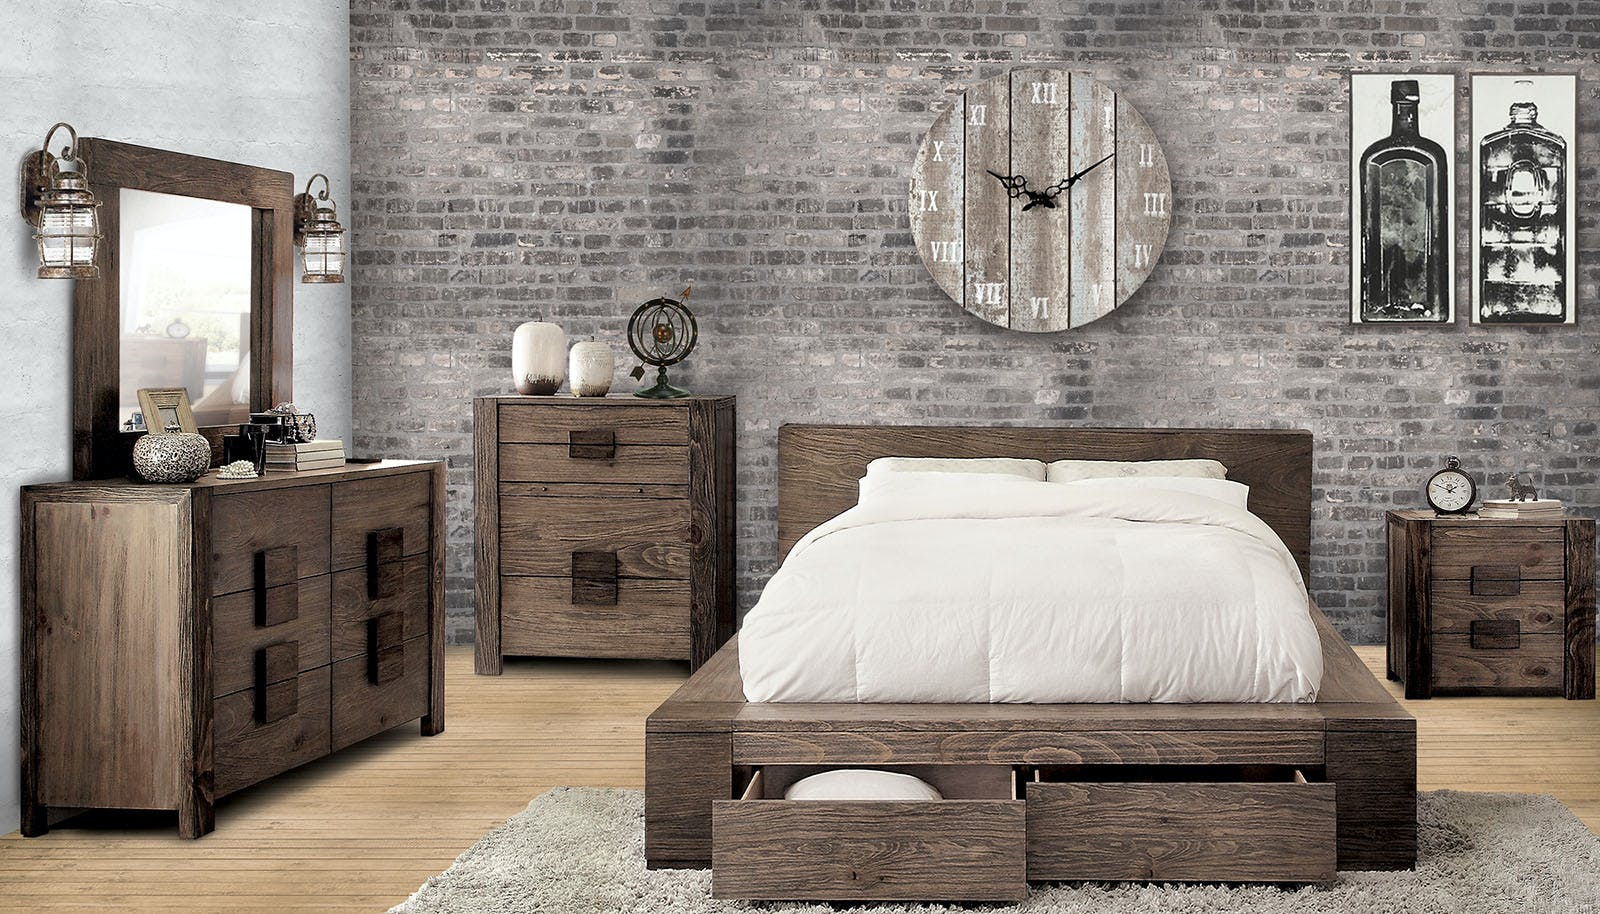 Furniture Of America Bedroom Cal King Bed Headboard Cm7629ck Hb The Furniture Mall Duluth And